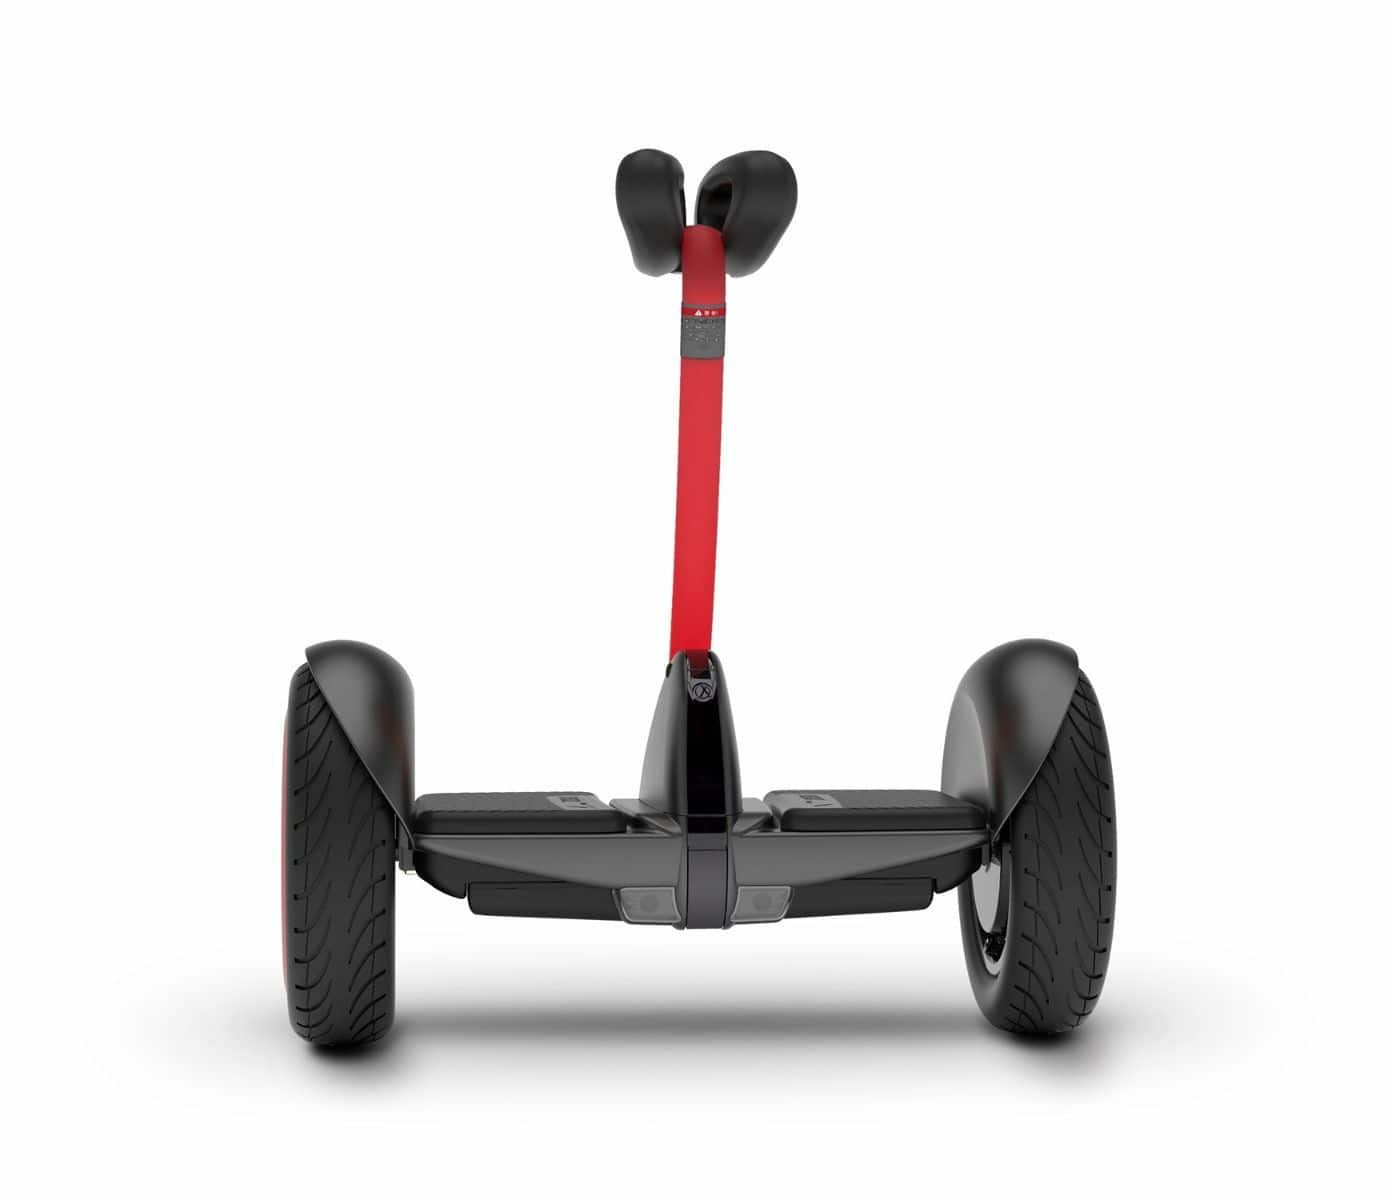 Segway Ninebot S RED 379.99 + tax $379.99